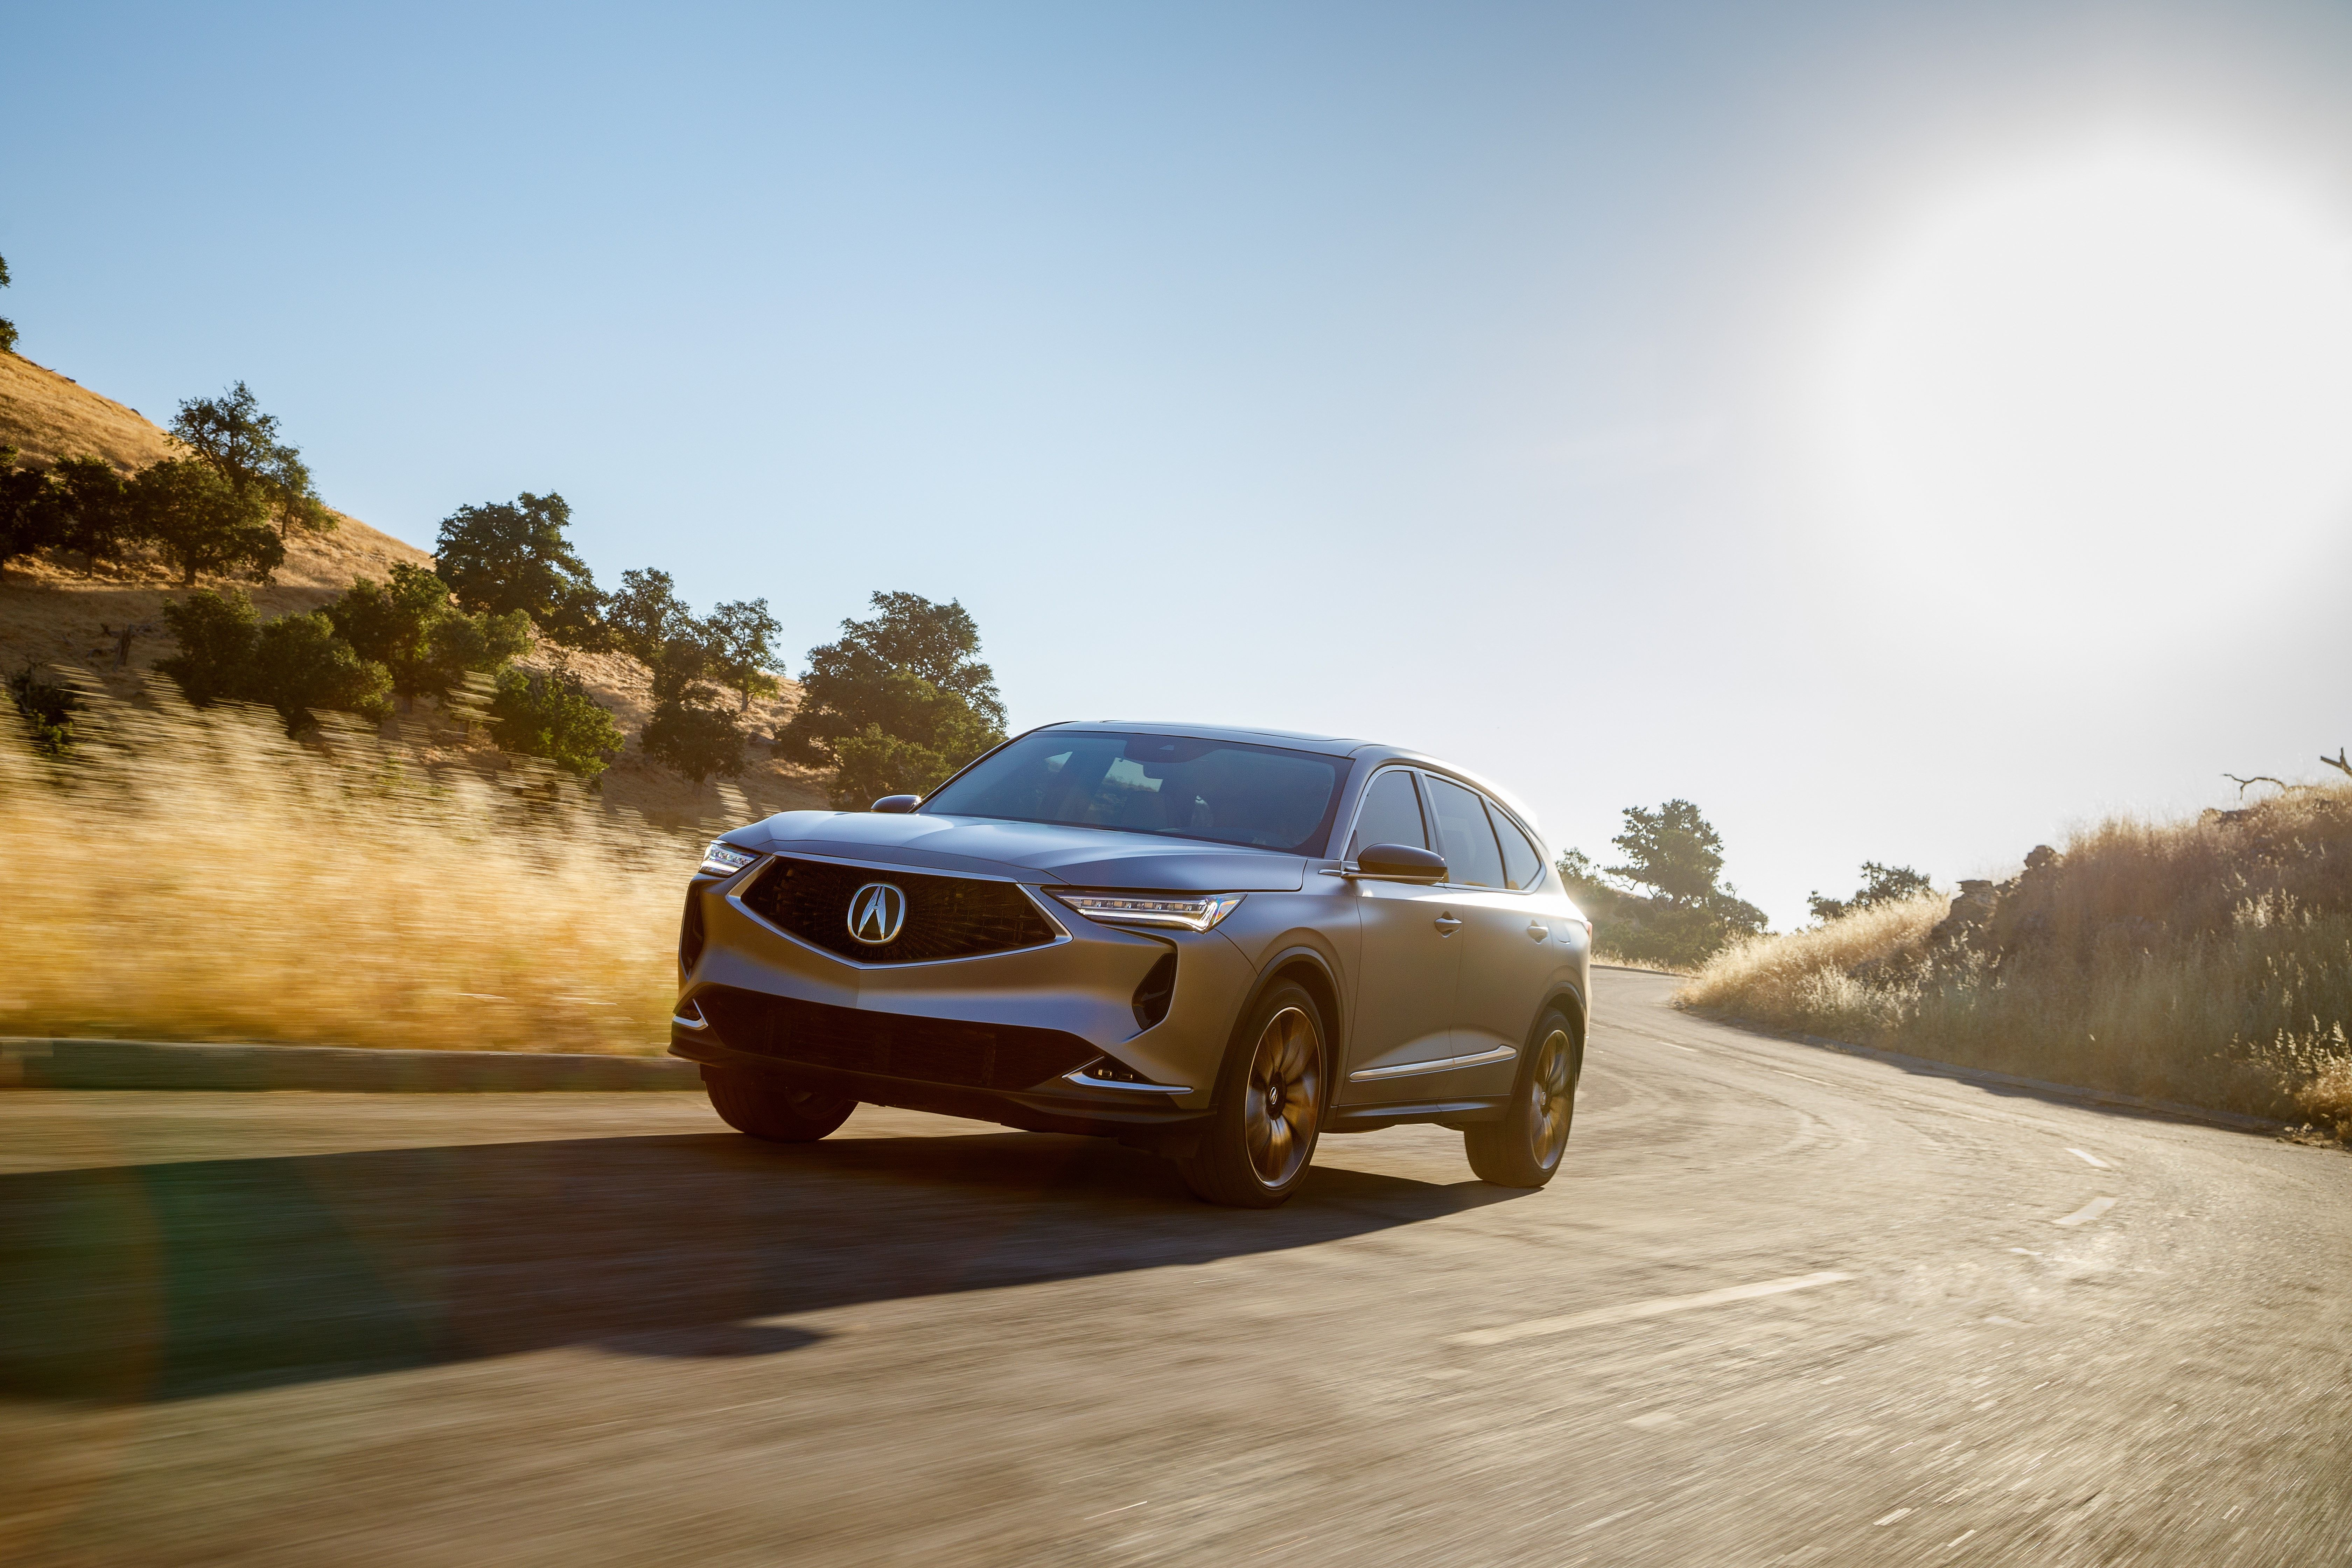 Look It S The 2022 Acura Mdx A Type S Variant Is Close Behind